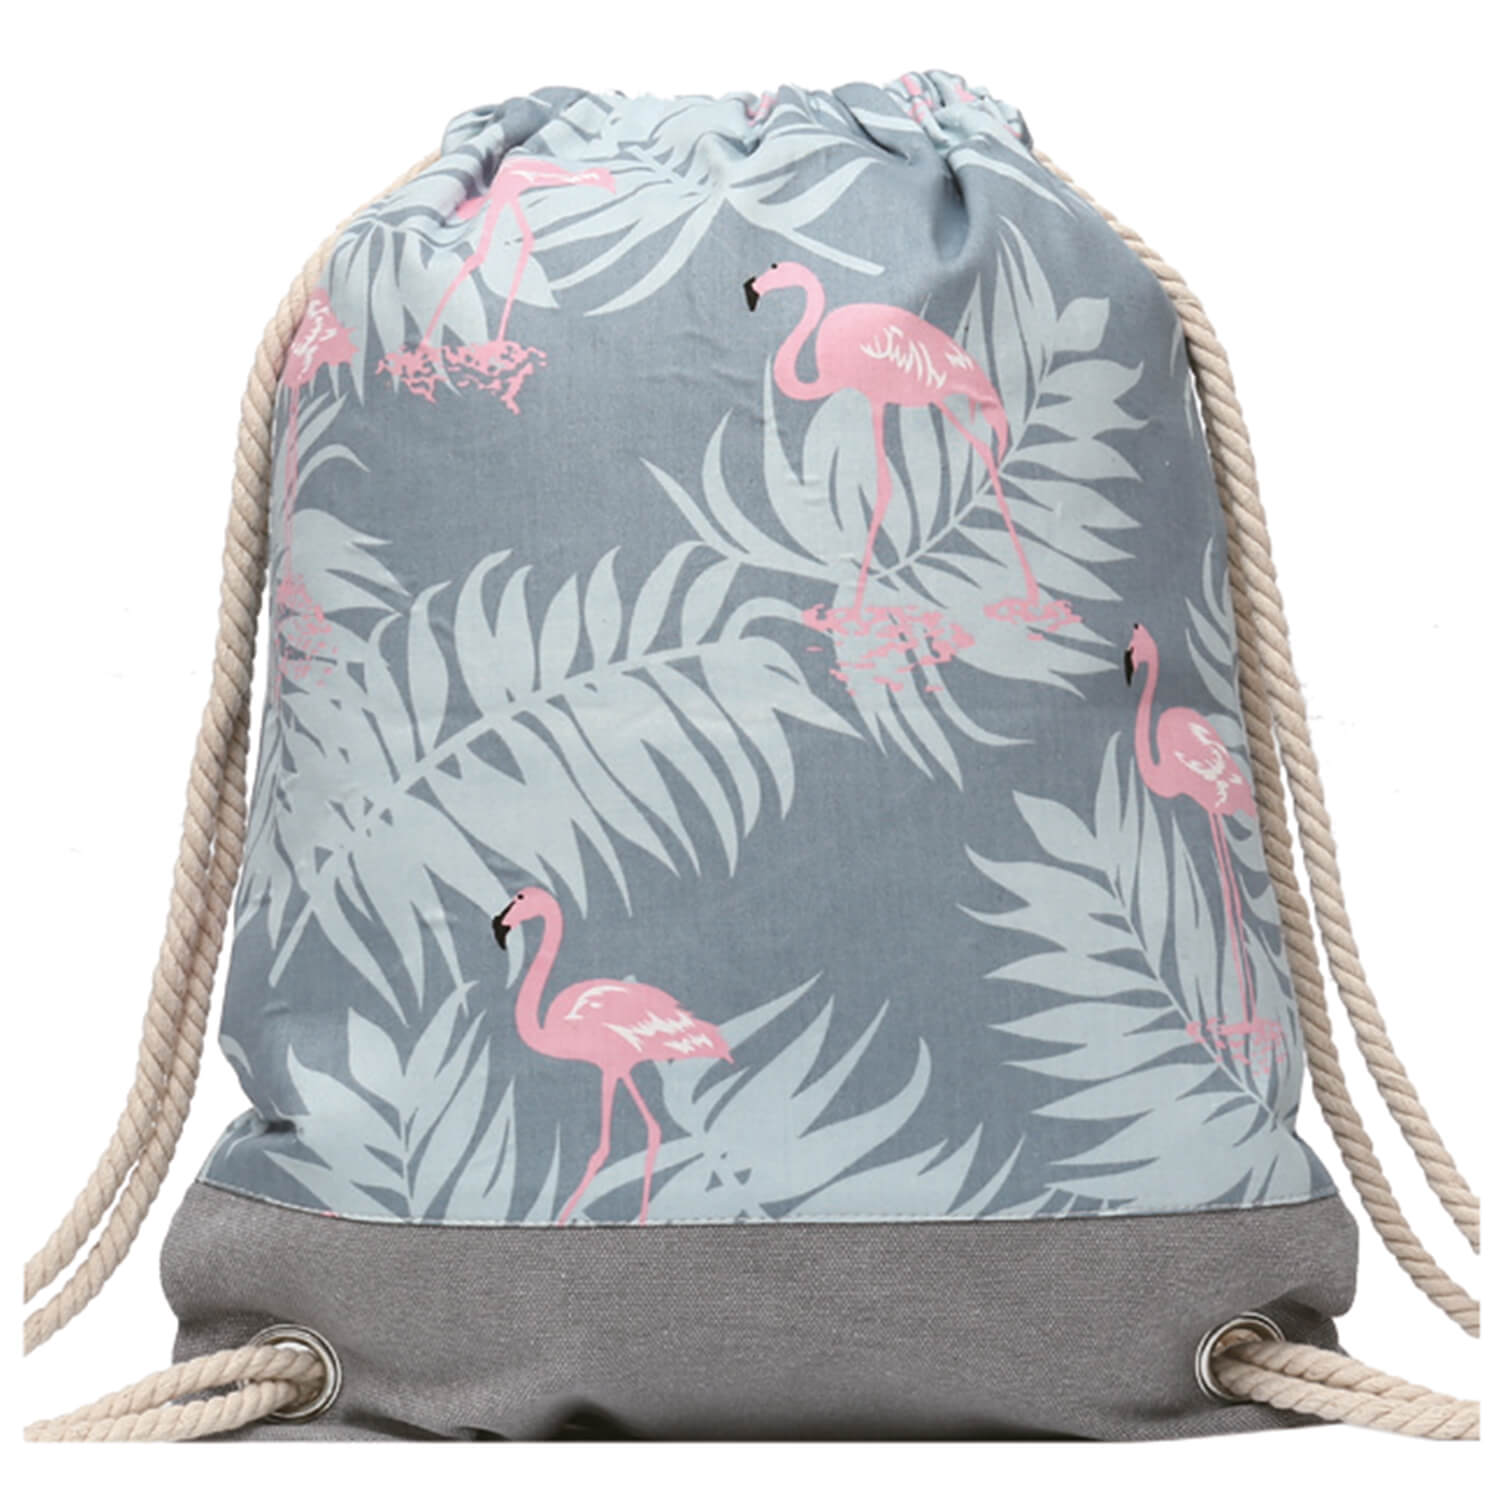 GYMBAG IMPERMEABLE 100% COTON CANVAS PURE NATURE FLAMANTS ROSES TROPICAL